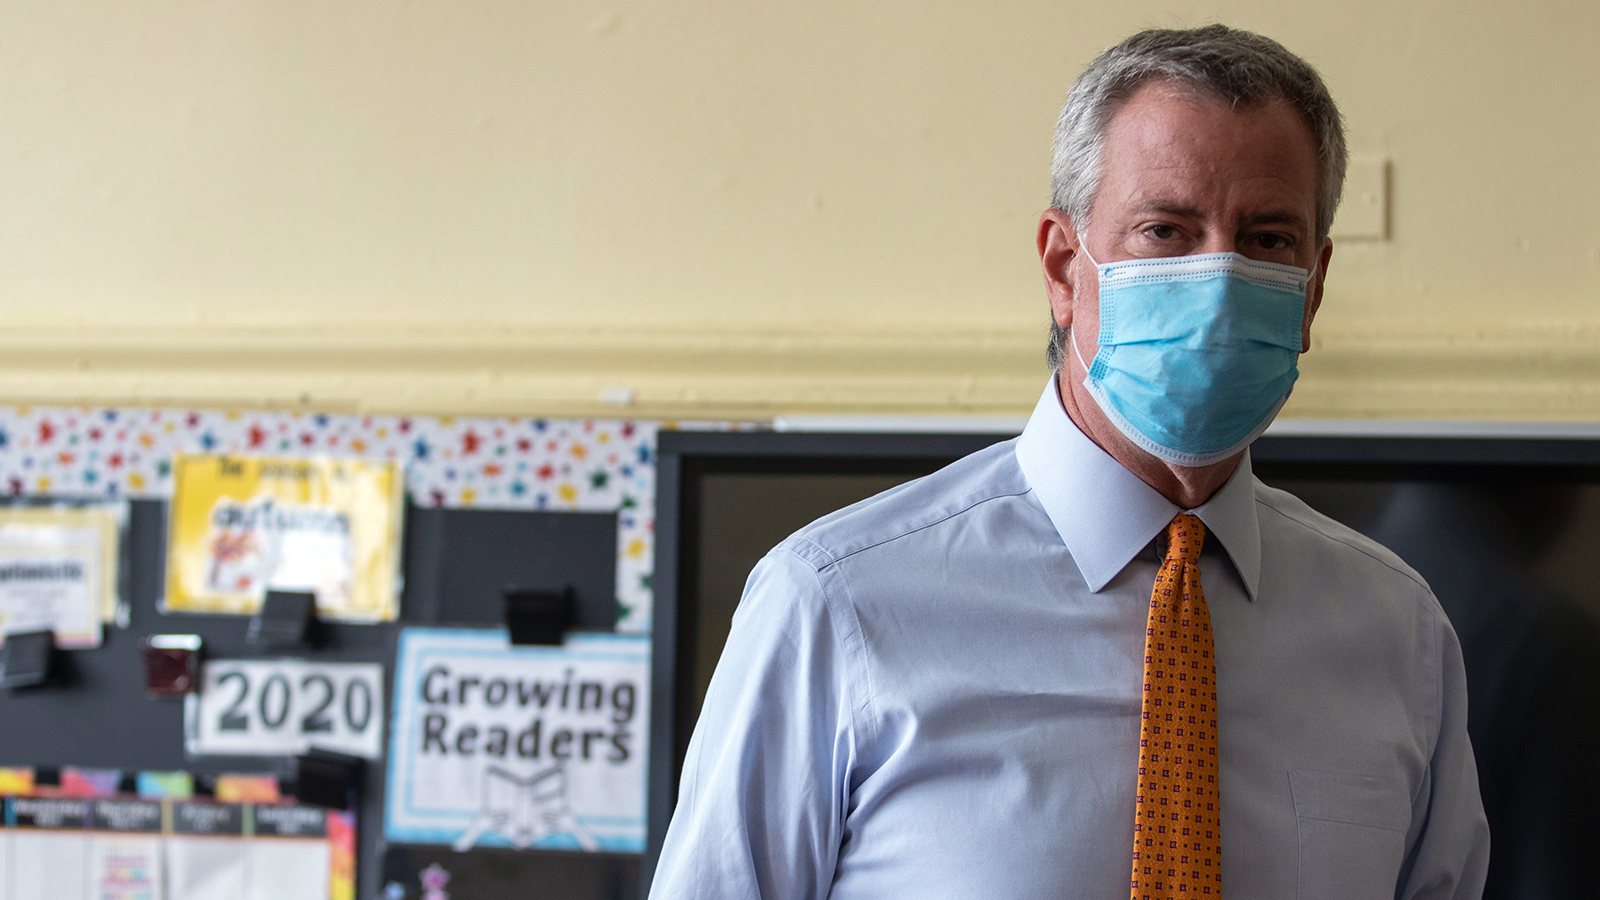 Bill de Blasio, mayor of New York, speaks during a news conference at New Bridges Elementary School in the Brooklyn borough of New York on Wednesday, August 19.